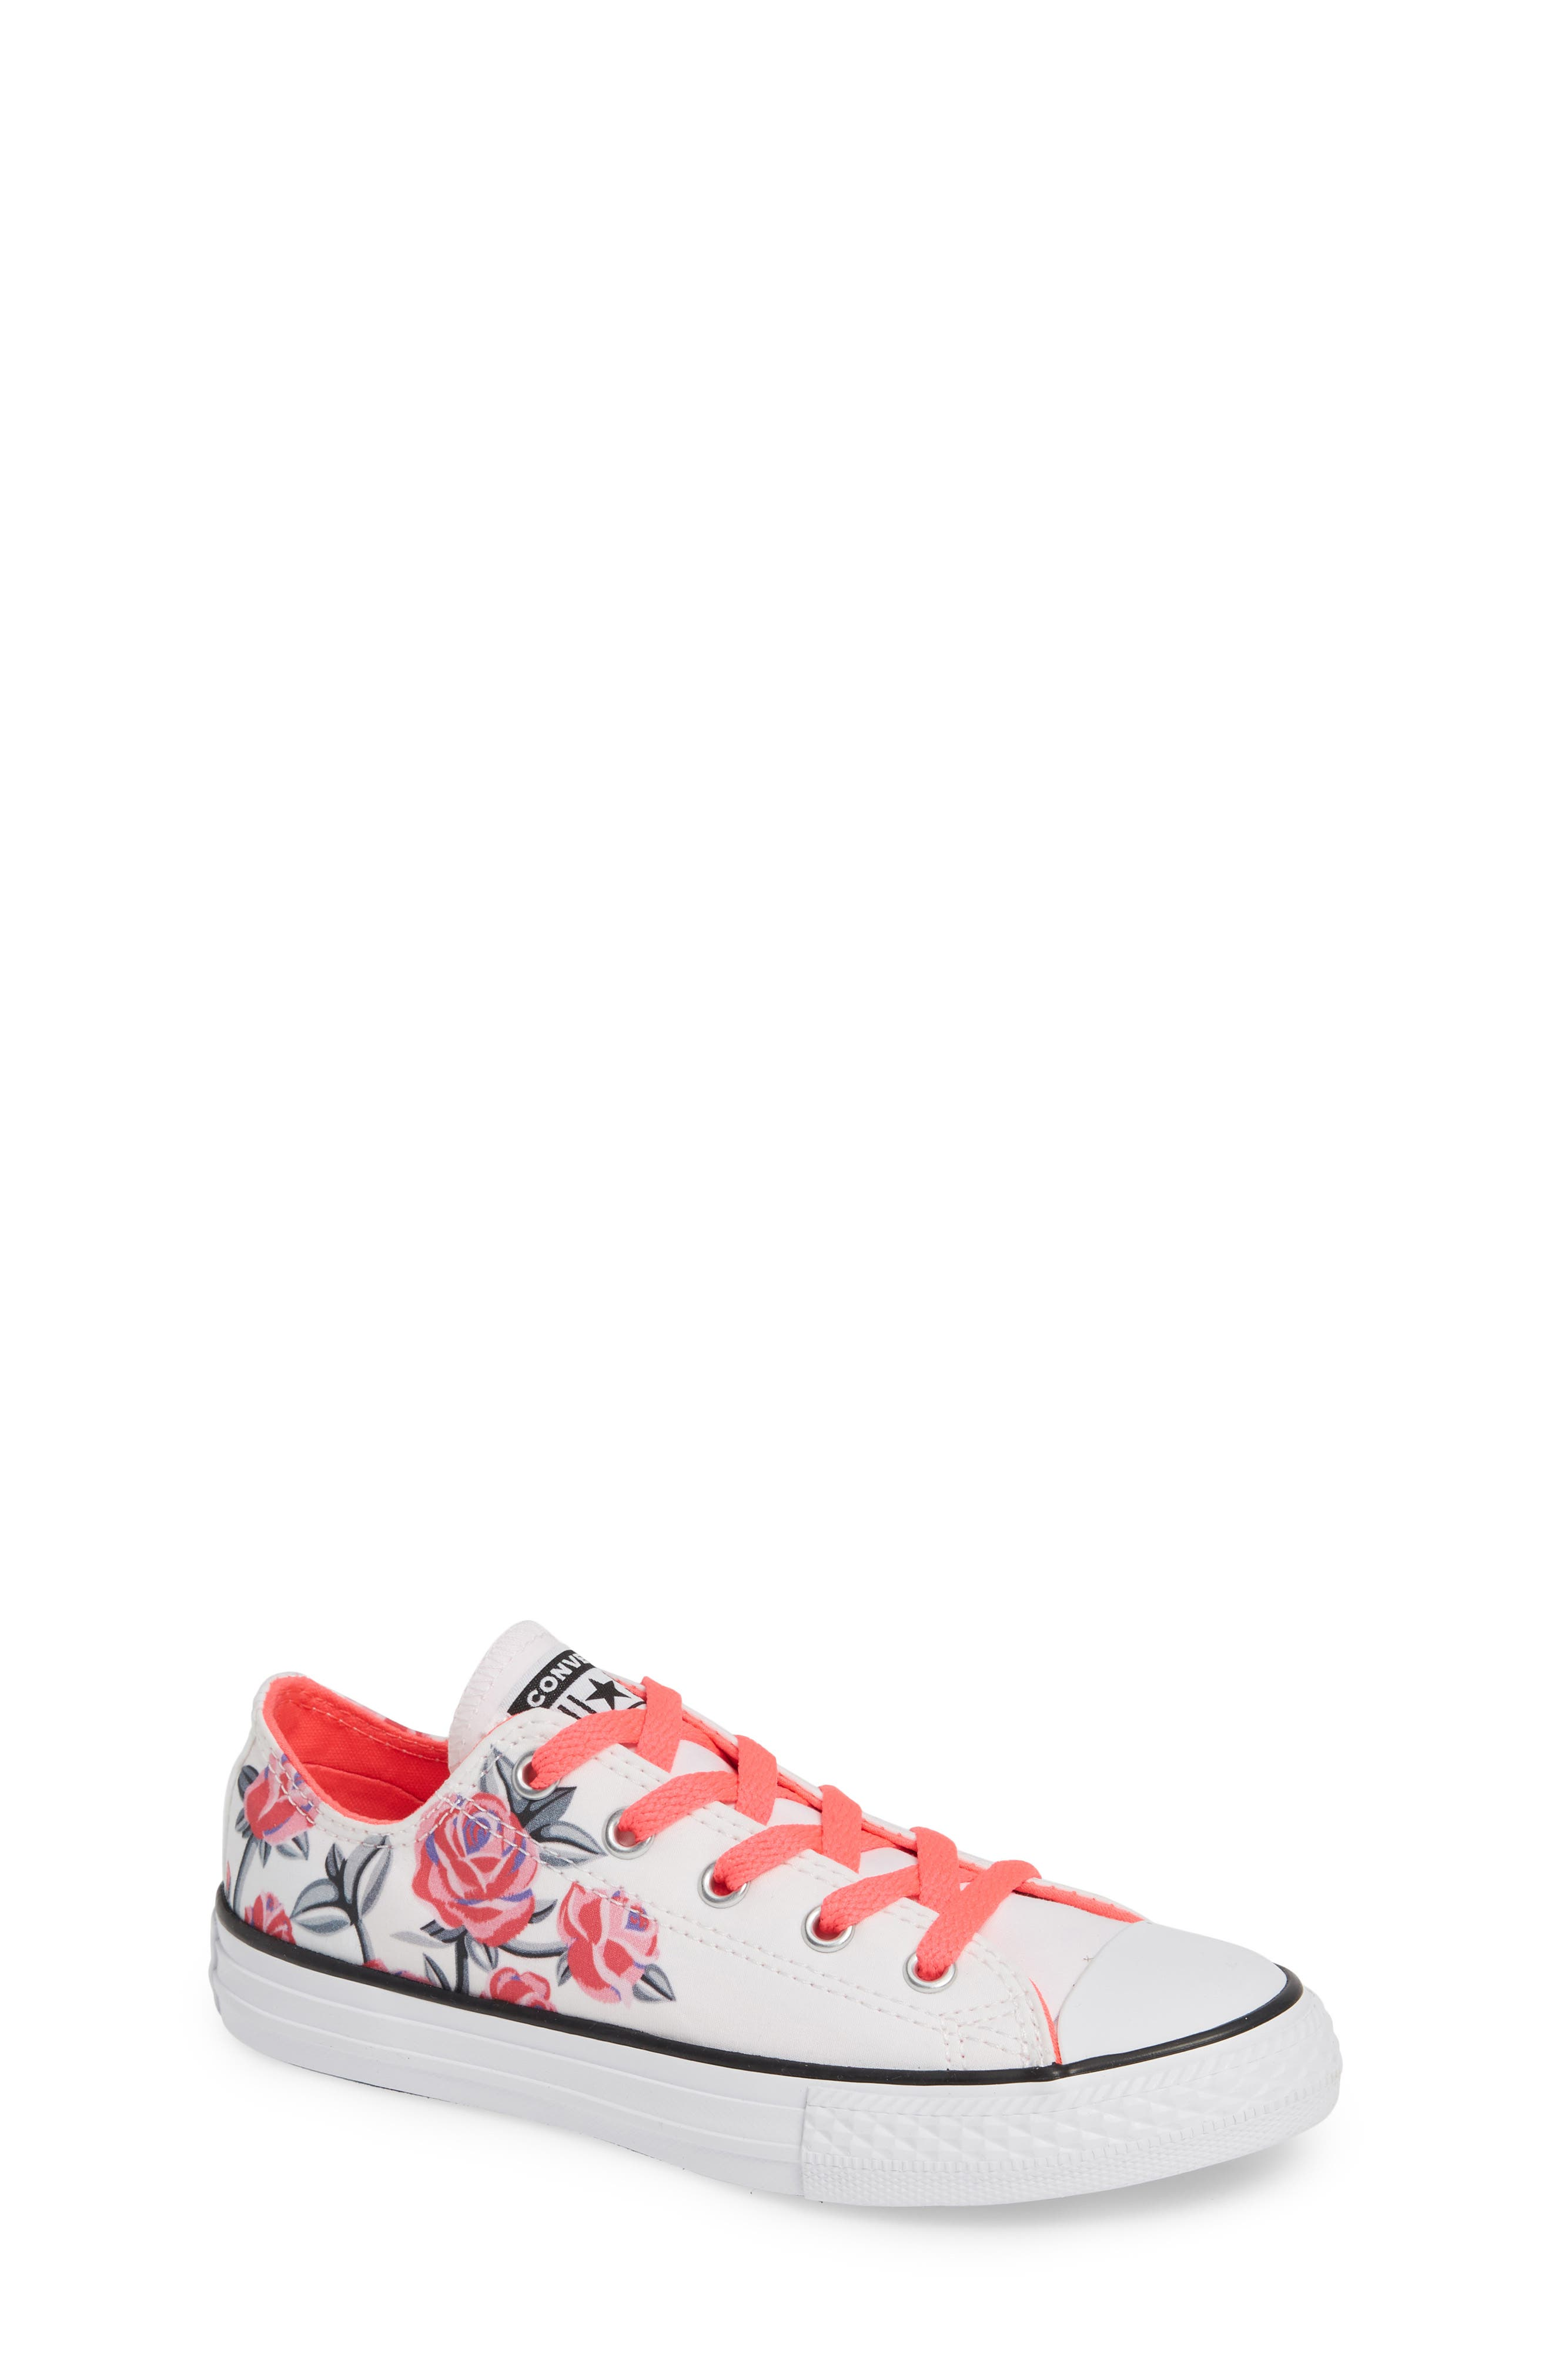 Chuck Taylor<sup>®</sup> All Star<sup>®</sup> Low Top Sneaker,                             Main thumbnail 1, color,                             WHITE/ RACER PINK/ BLACK